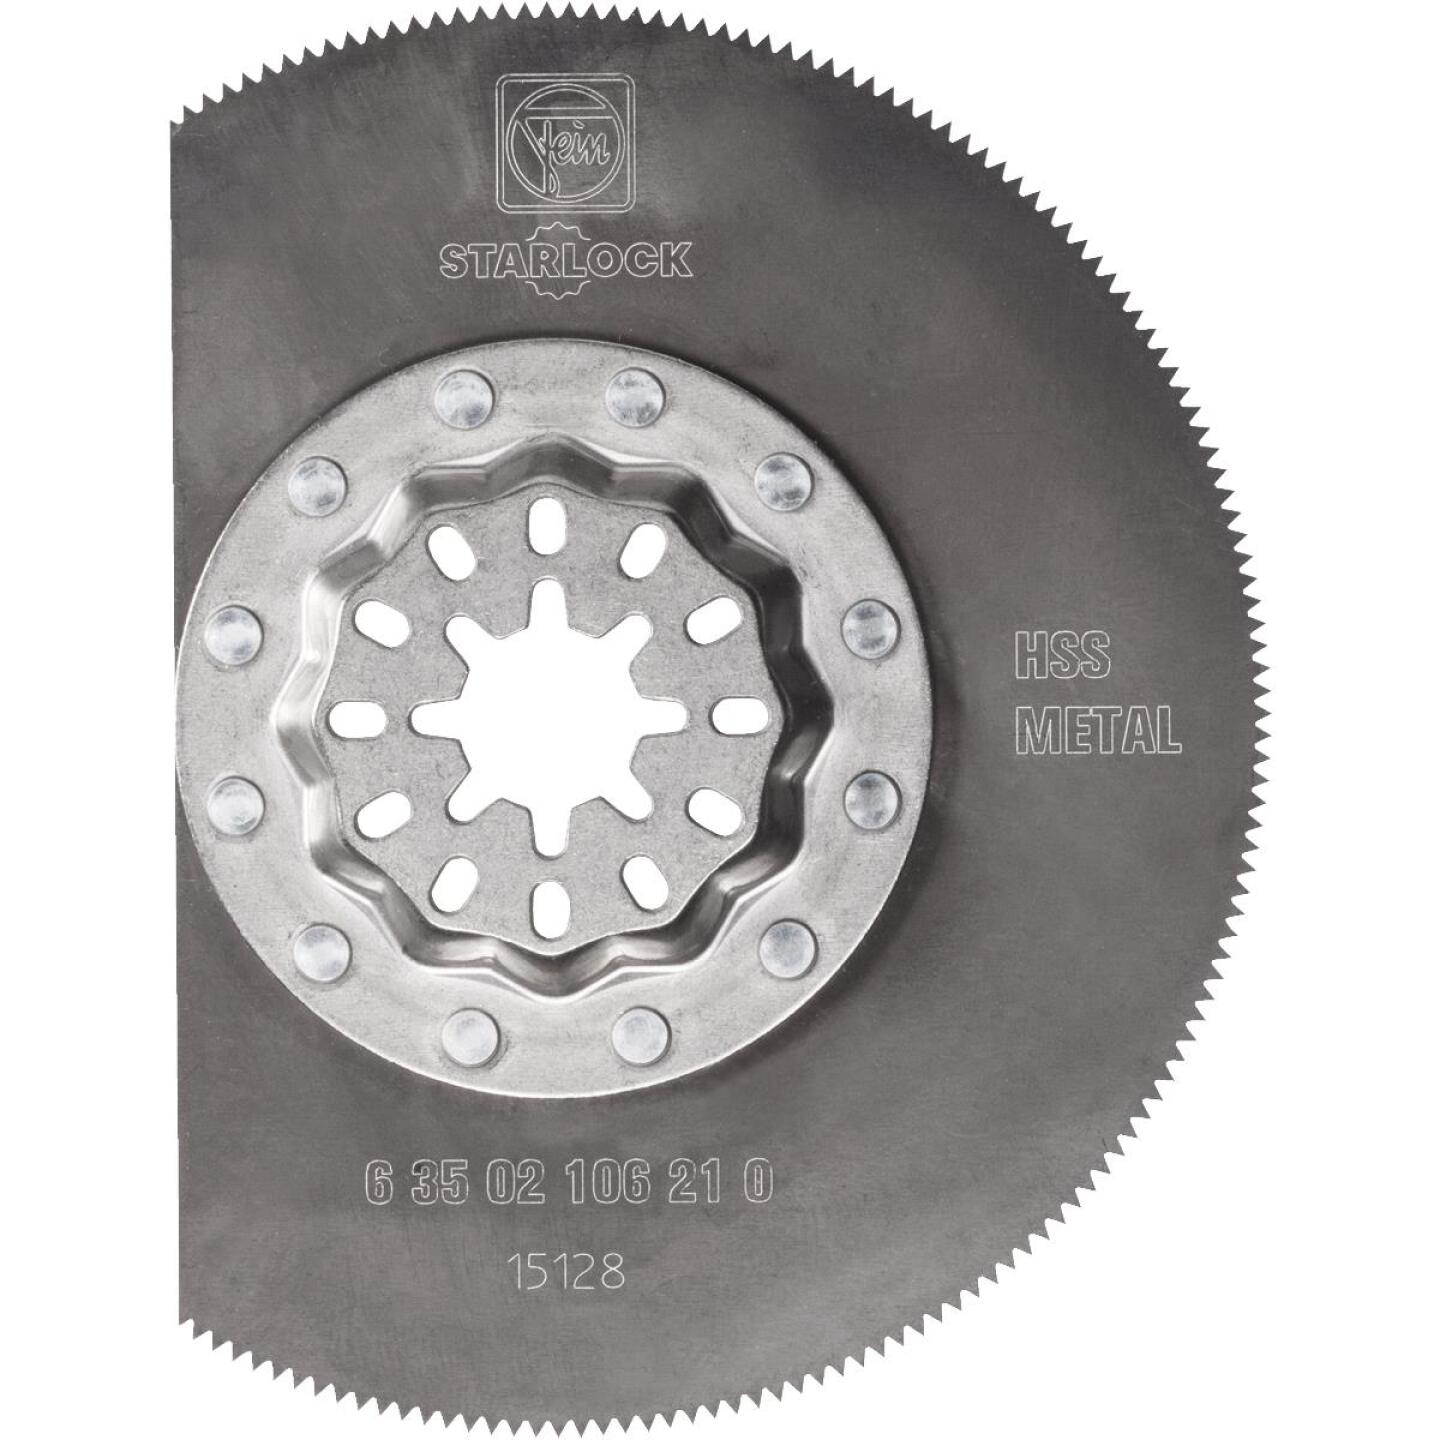 Fein Starlock 3-1/8 In. Stainless Steel HSS Oscillating Blade Image 1